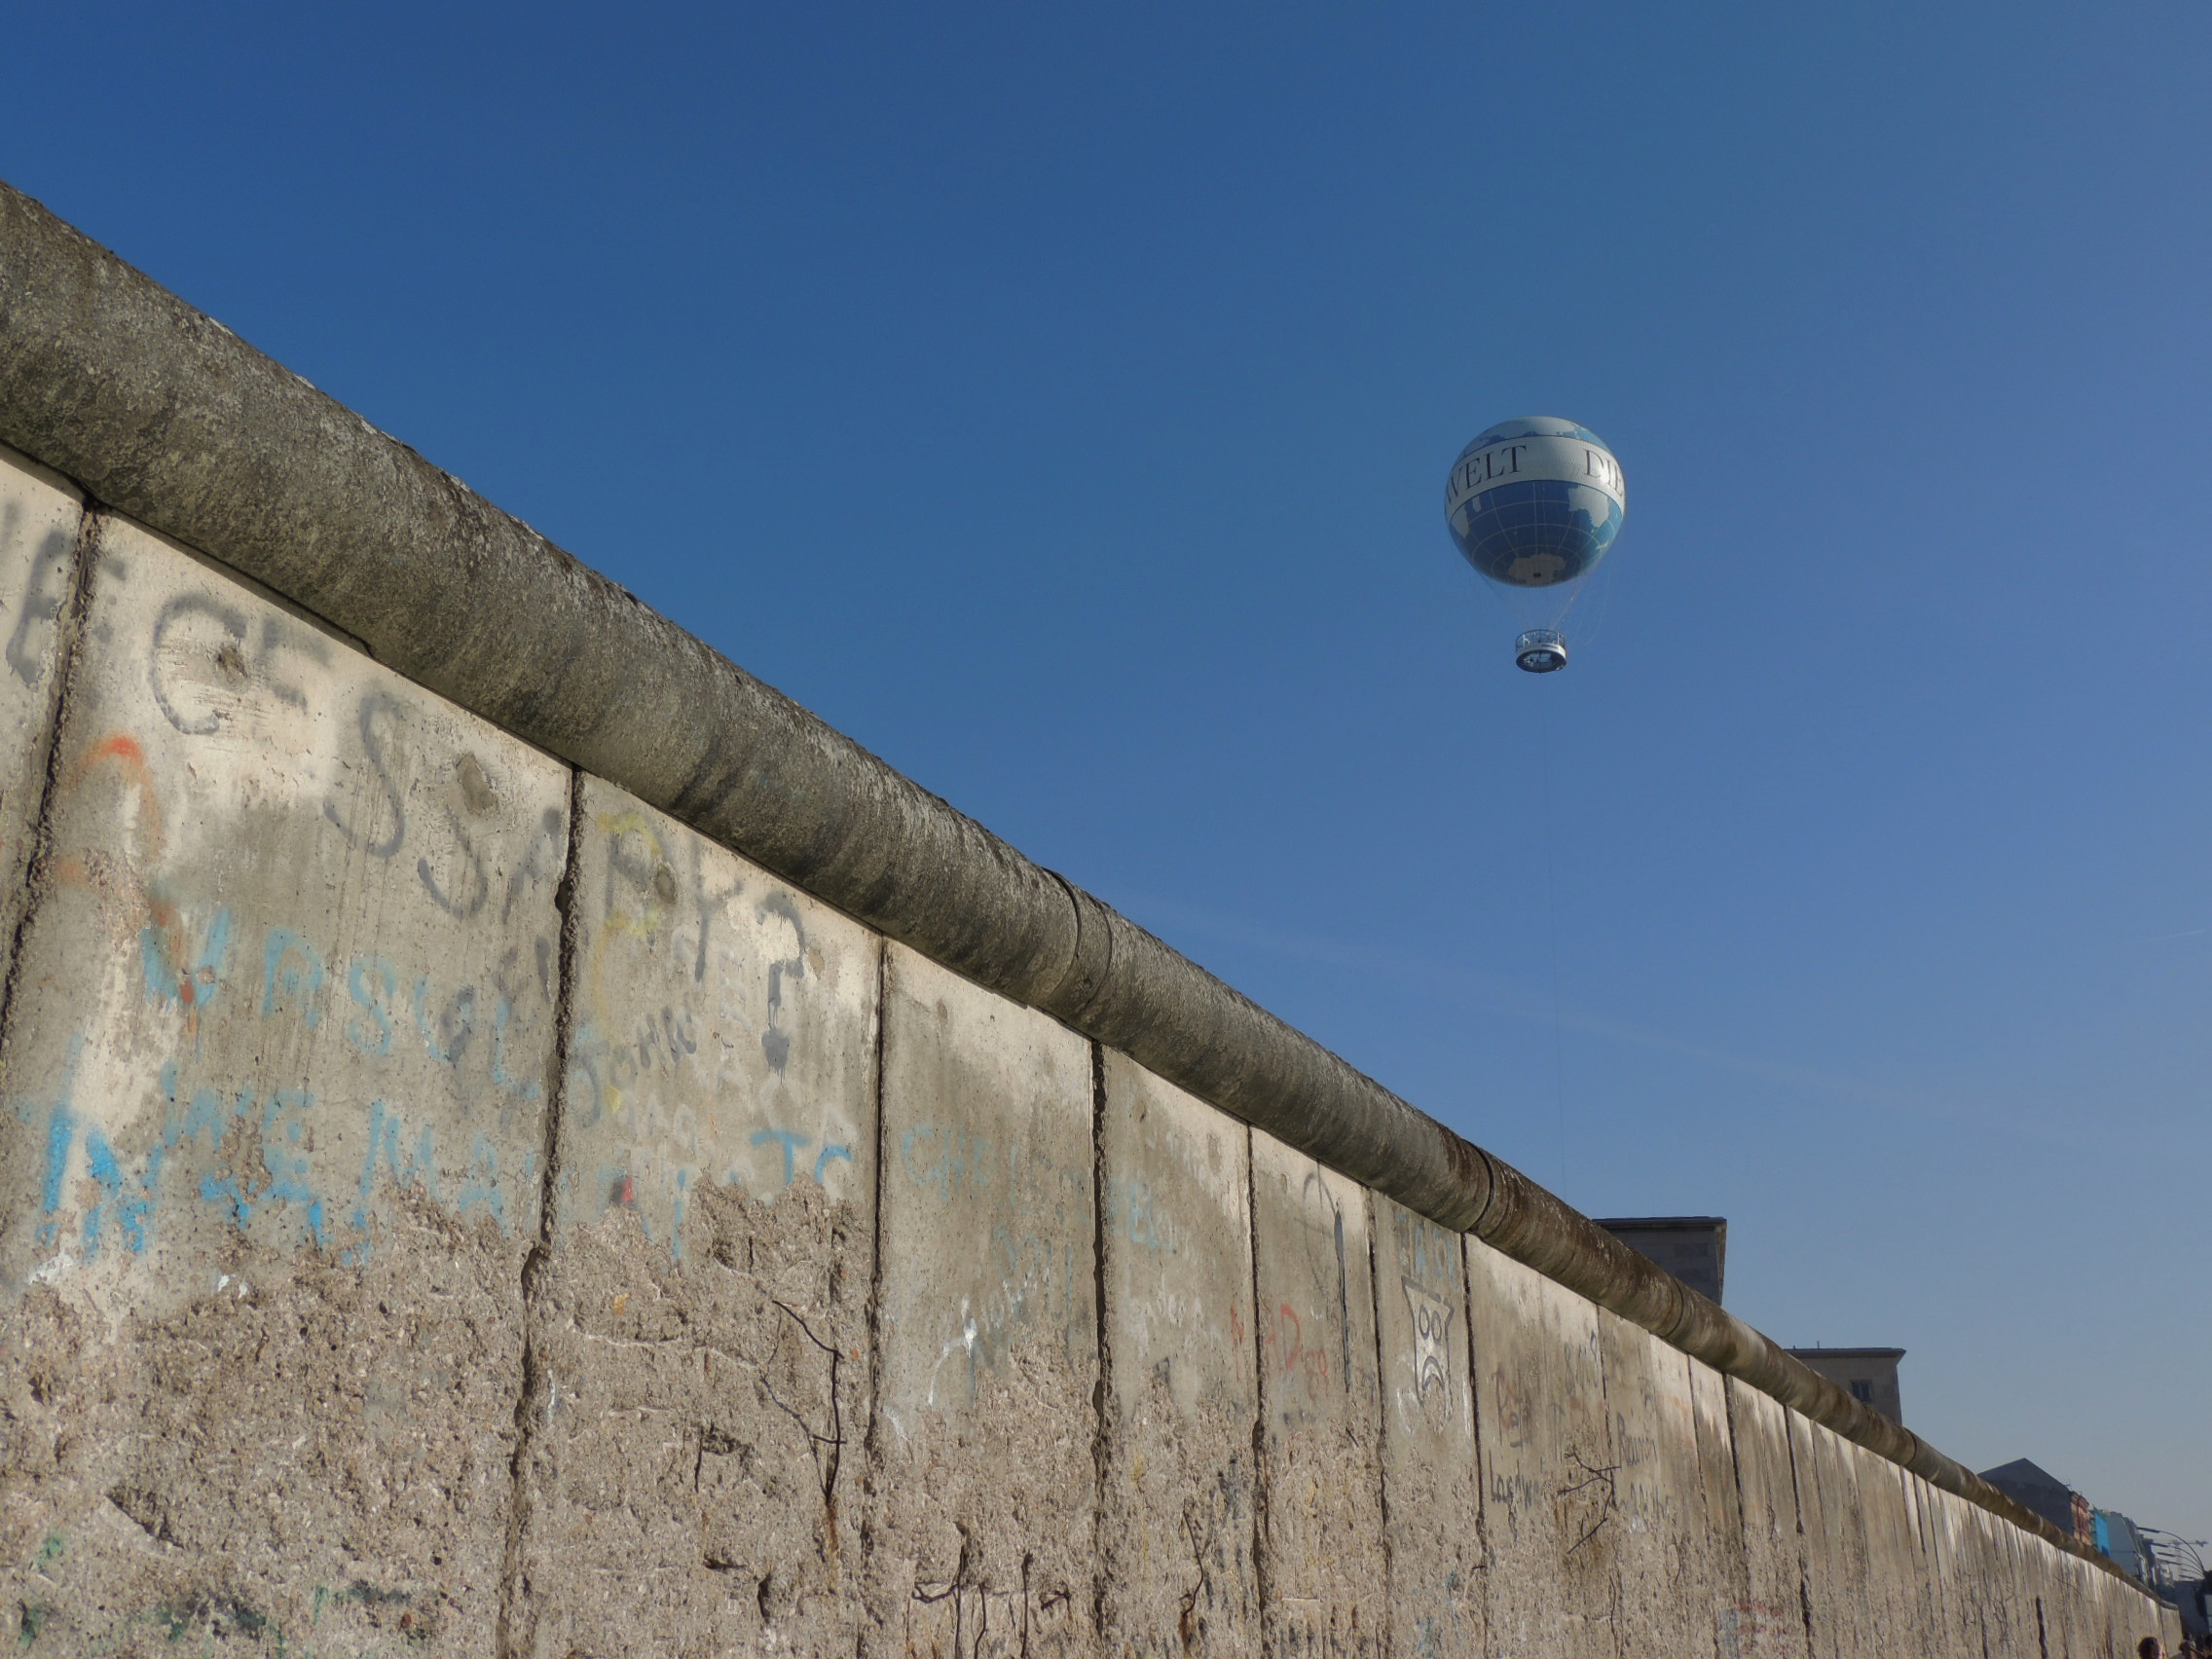 the crumbling berlin wall by day photo essay the travelling i spotted the air balloon promoting the newspaper die welt which created a nice bit of contrast between the wall and the world